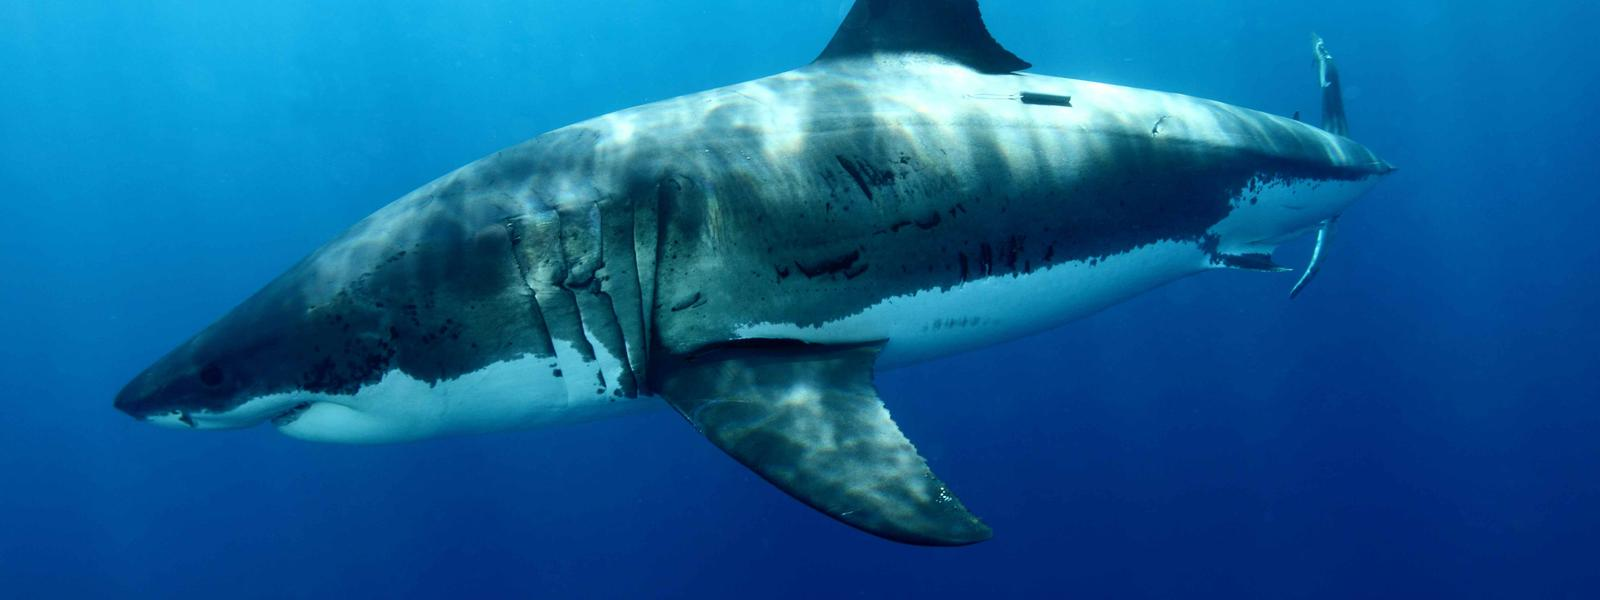 images of great white sharks - photo #19